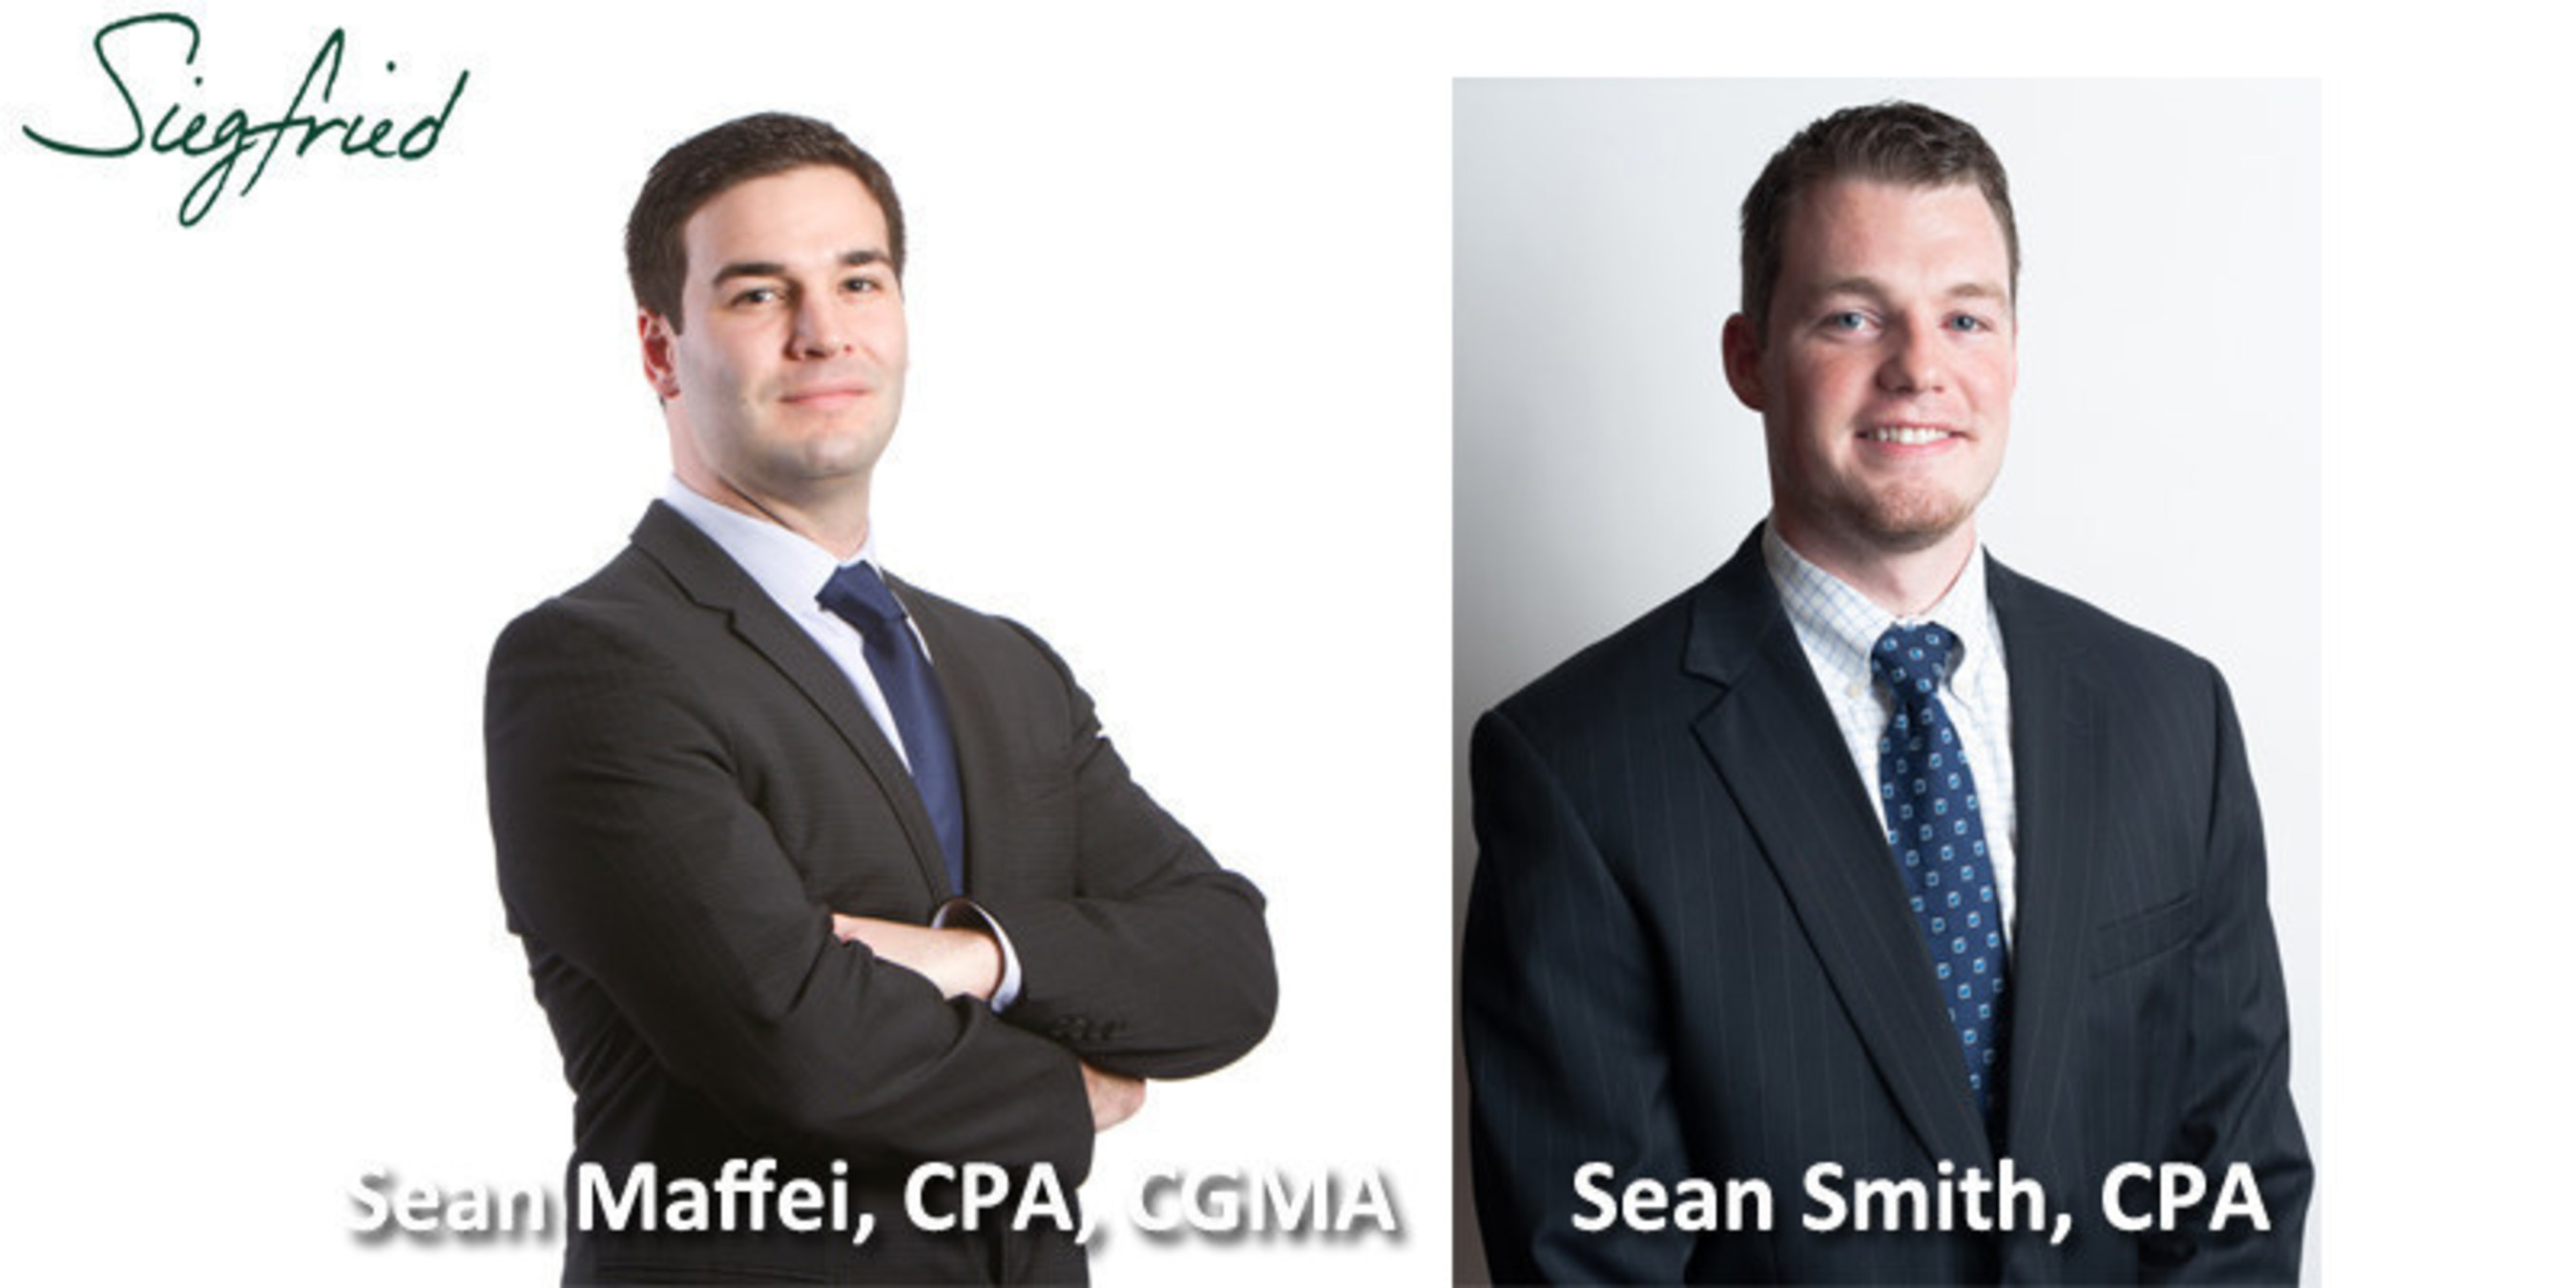 The Siegfried Group, LLP Welcomes New Team Leaders to Their New Roles